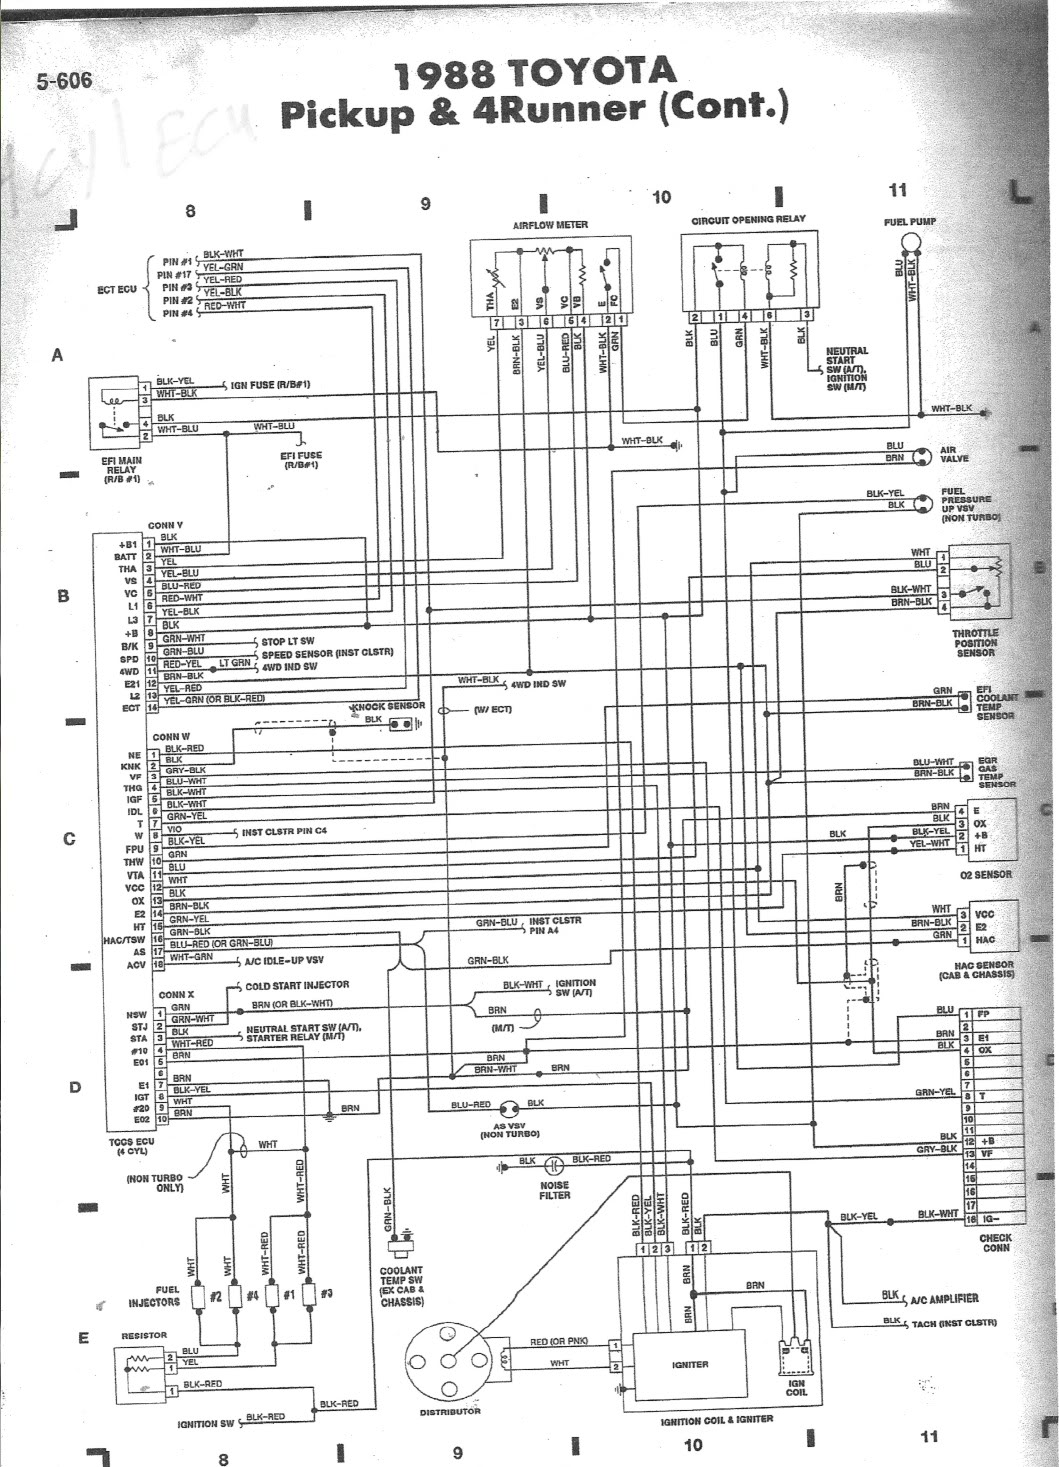 1988 toyota pickup starter wiring diagram danfoss hsa3 no power to circuit opening relay yotatech forums